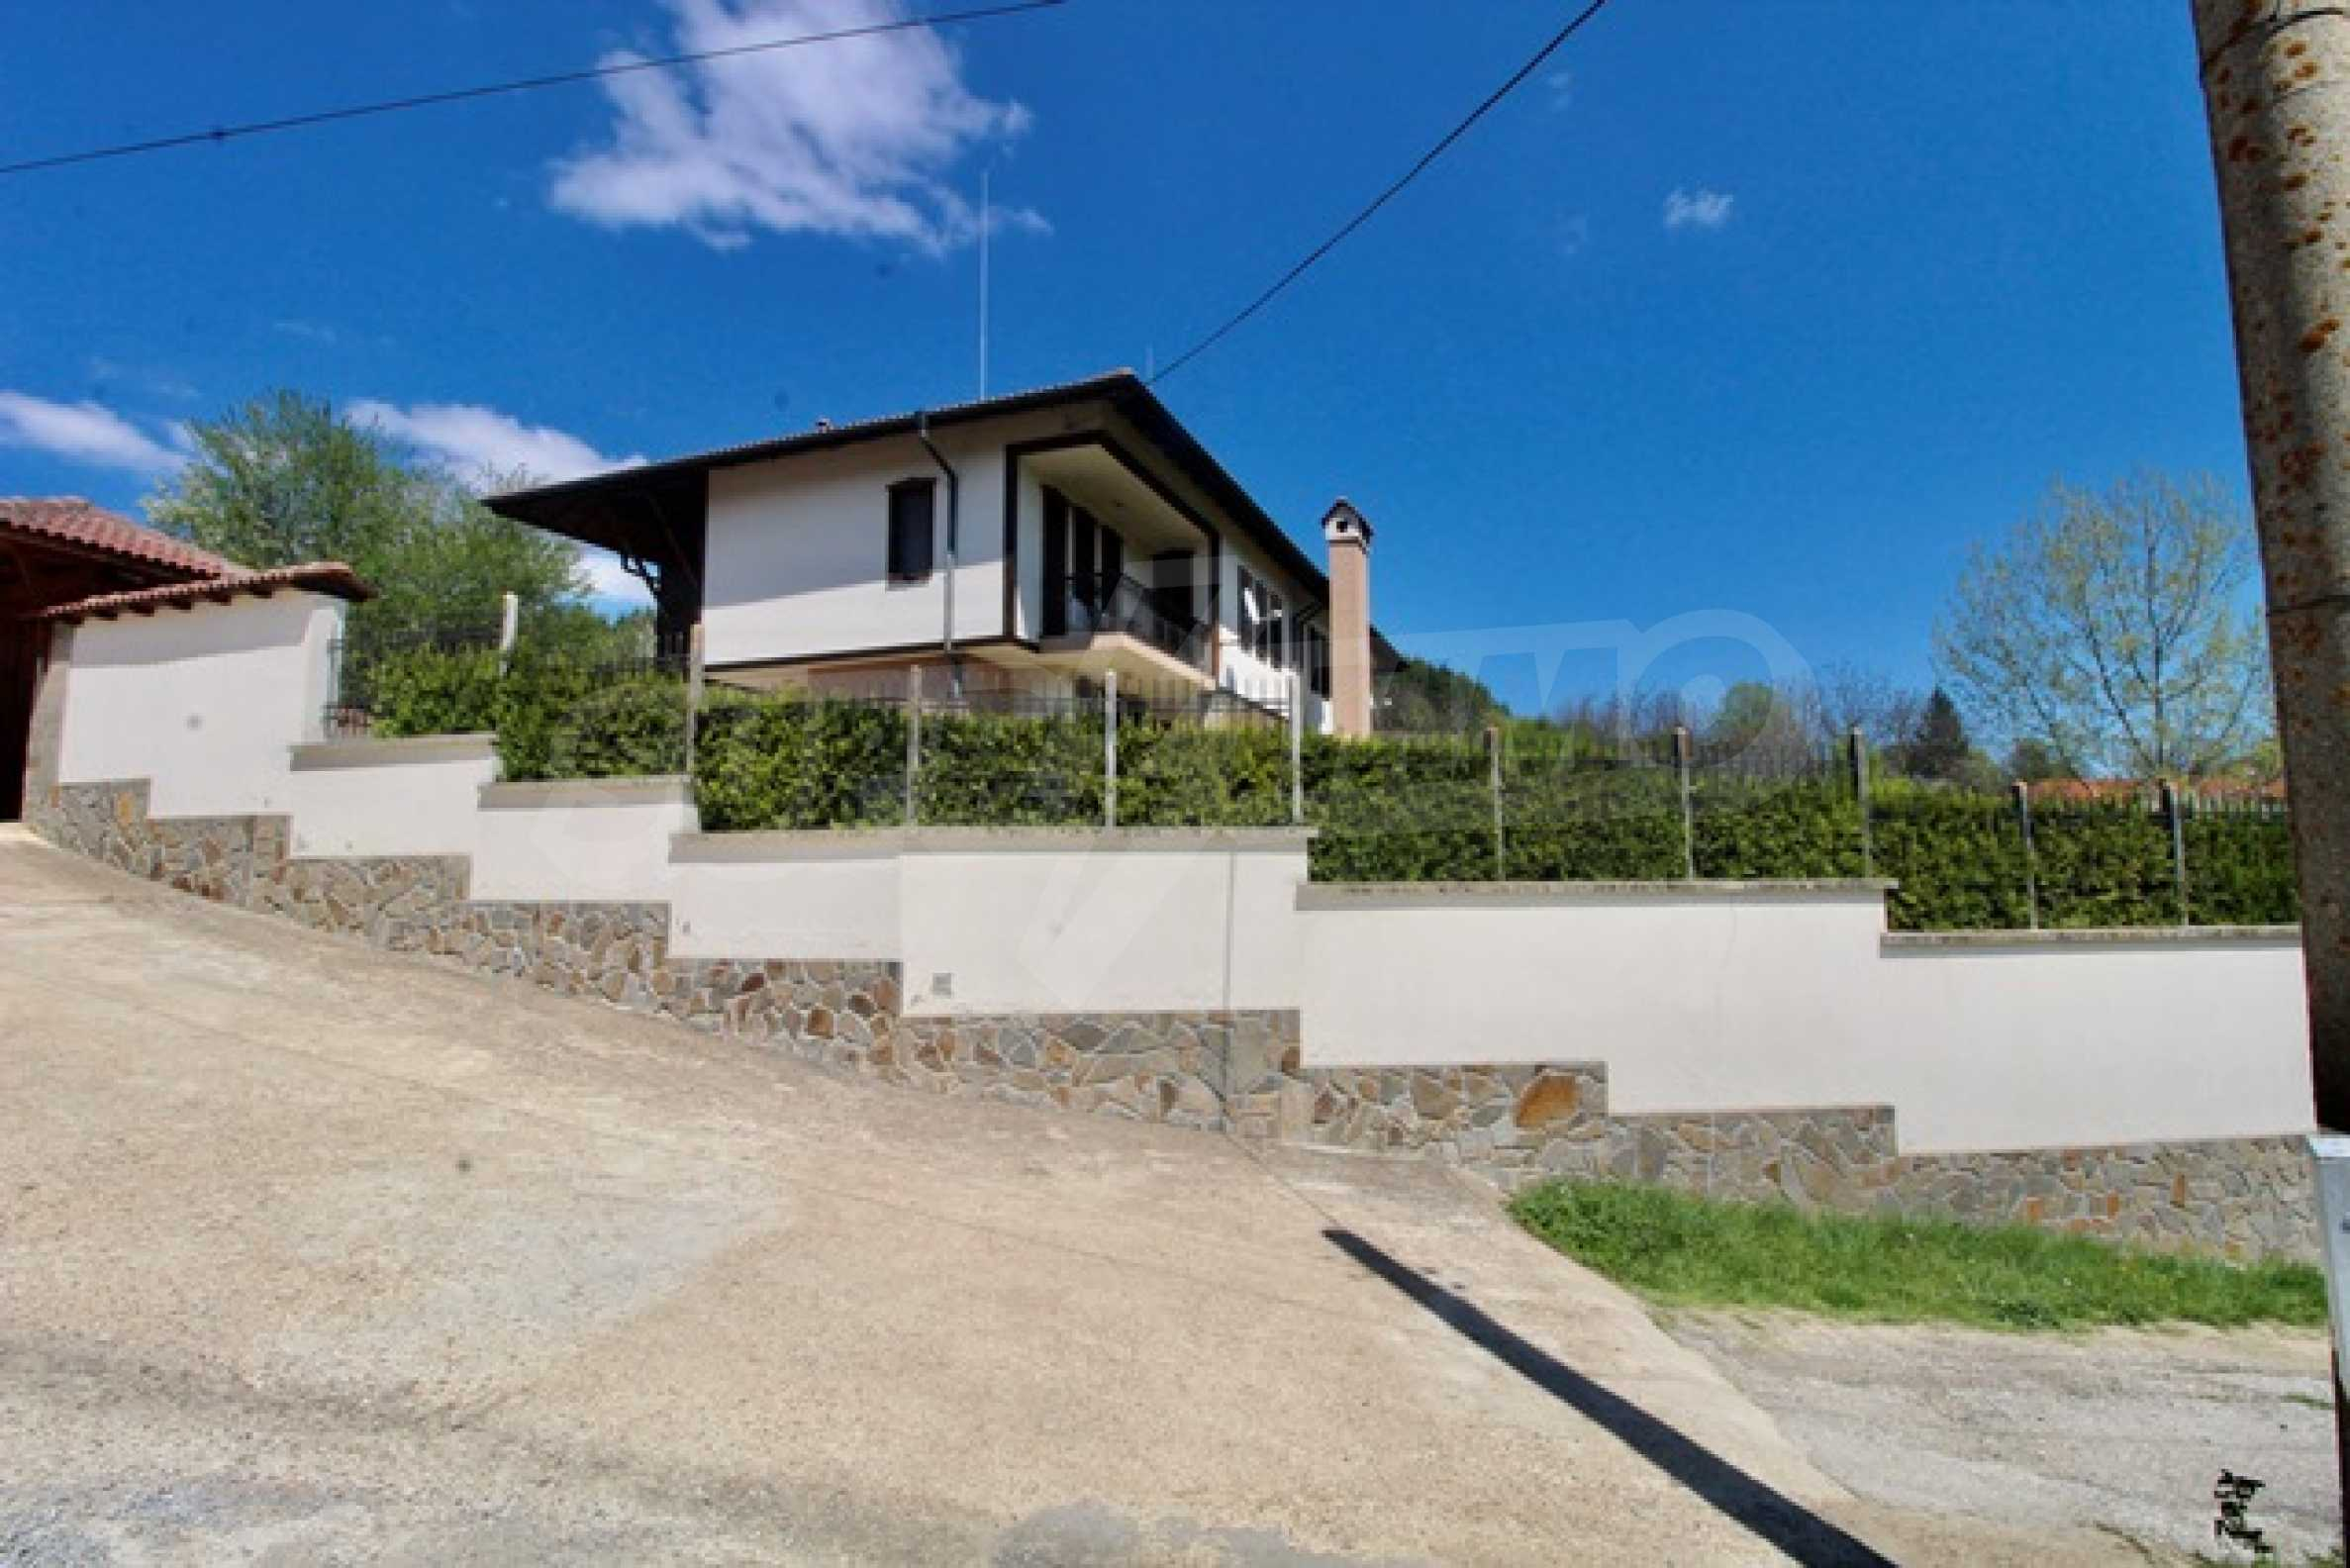 Two houses with swimming pool located close to a lake 65